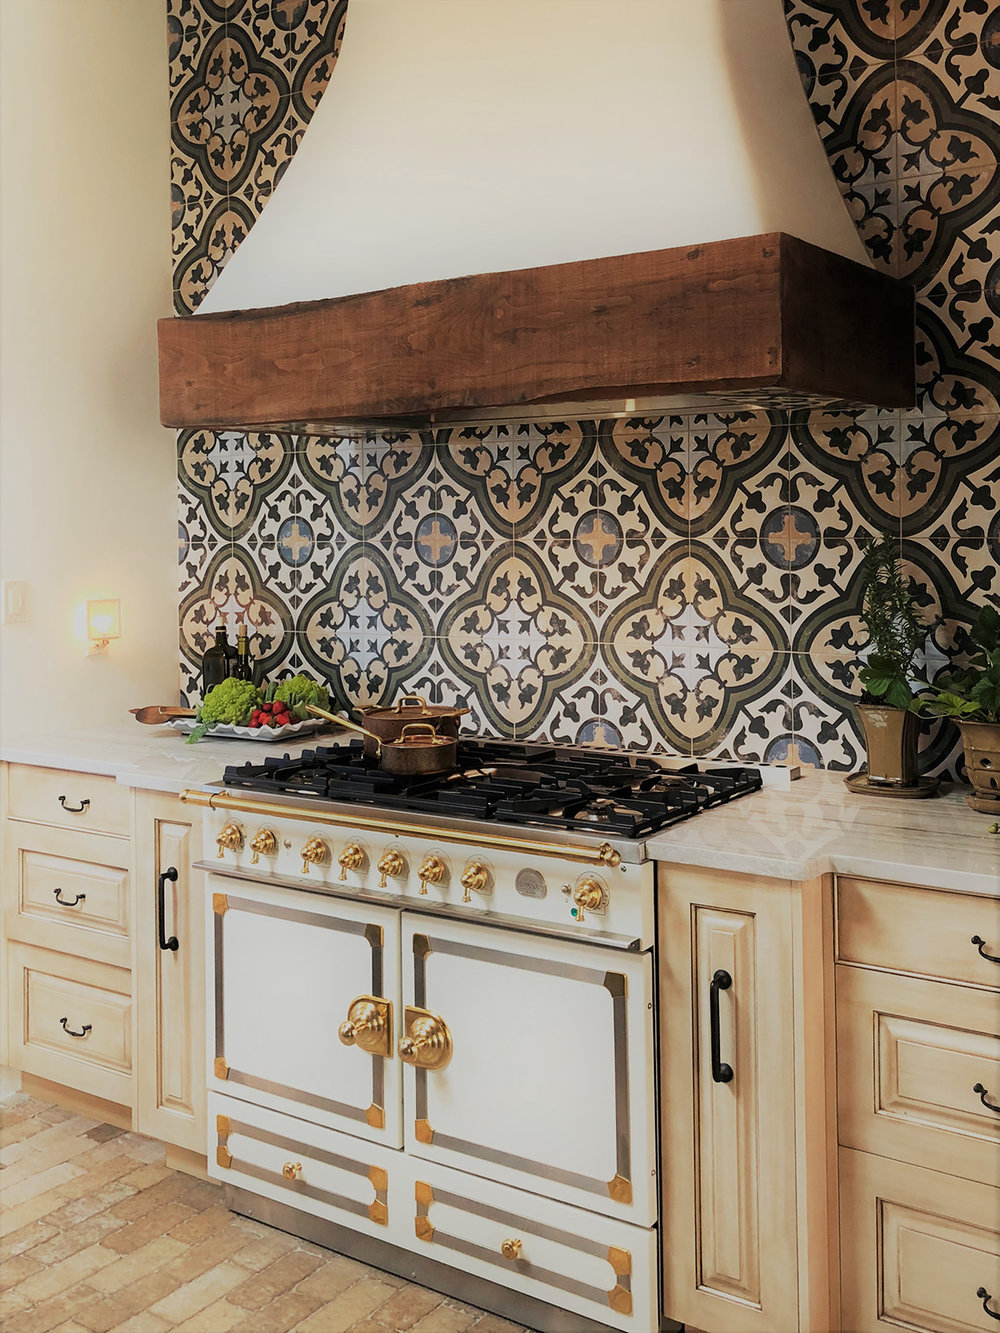 santa-fe-new-mexico-kitchen-breakfast-nook-interior-design-montgomery-home-10.jpg